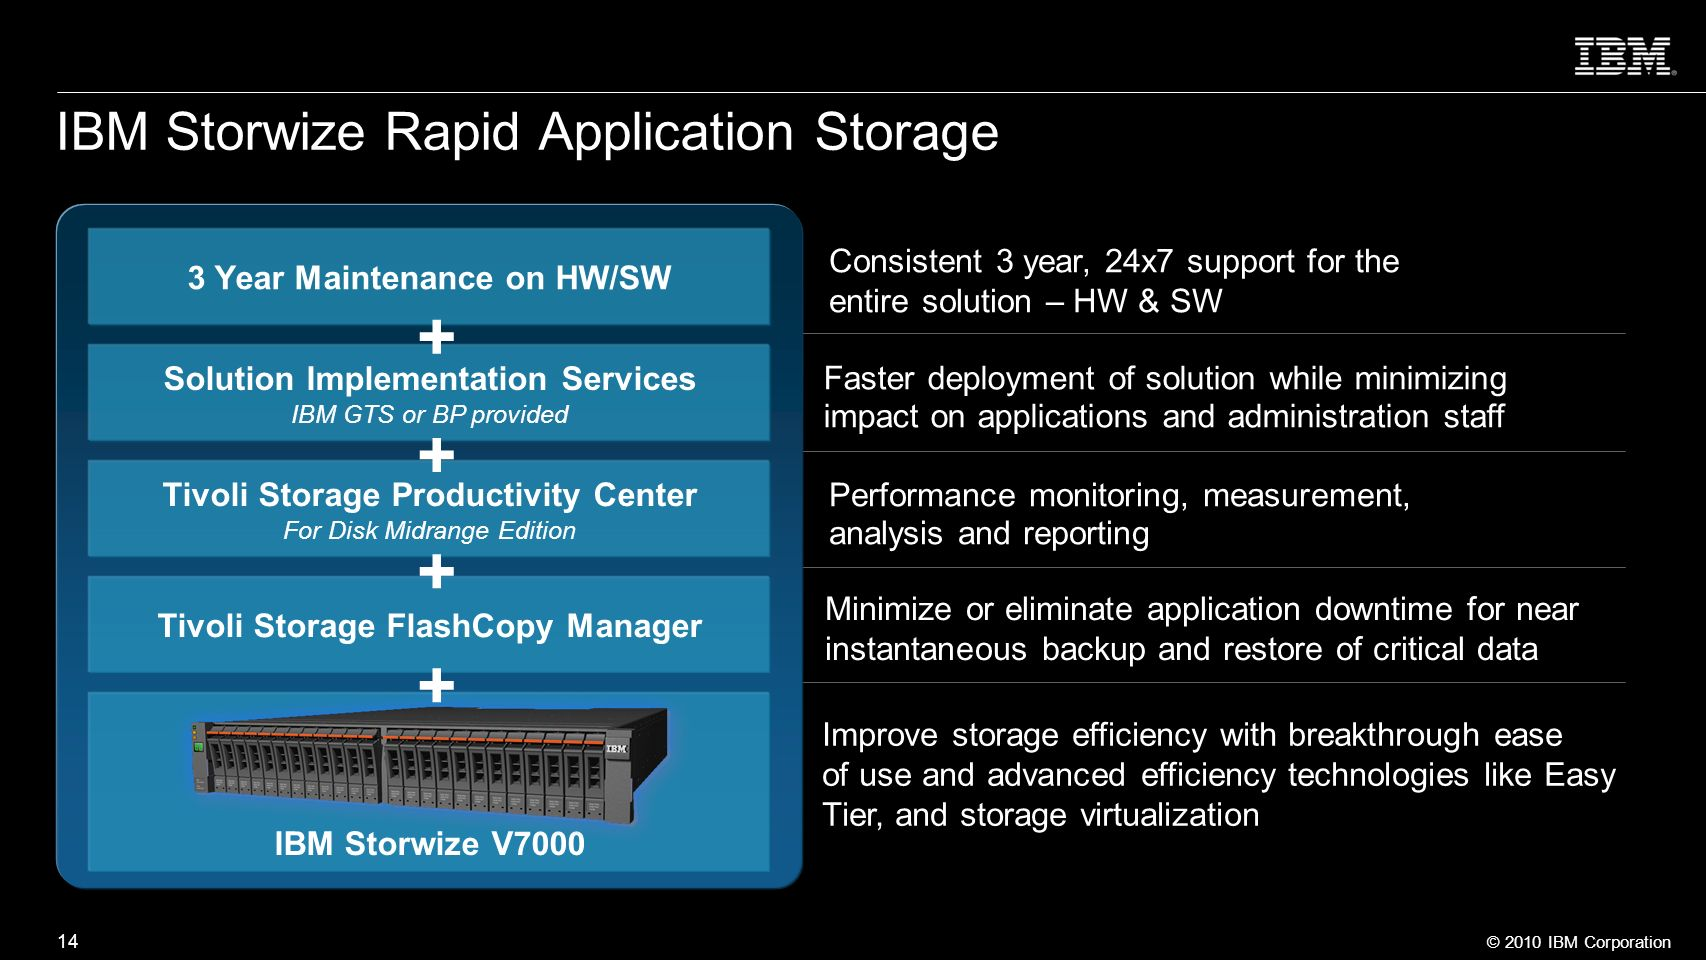 IBM Storwize Rapid Application Storage